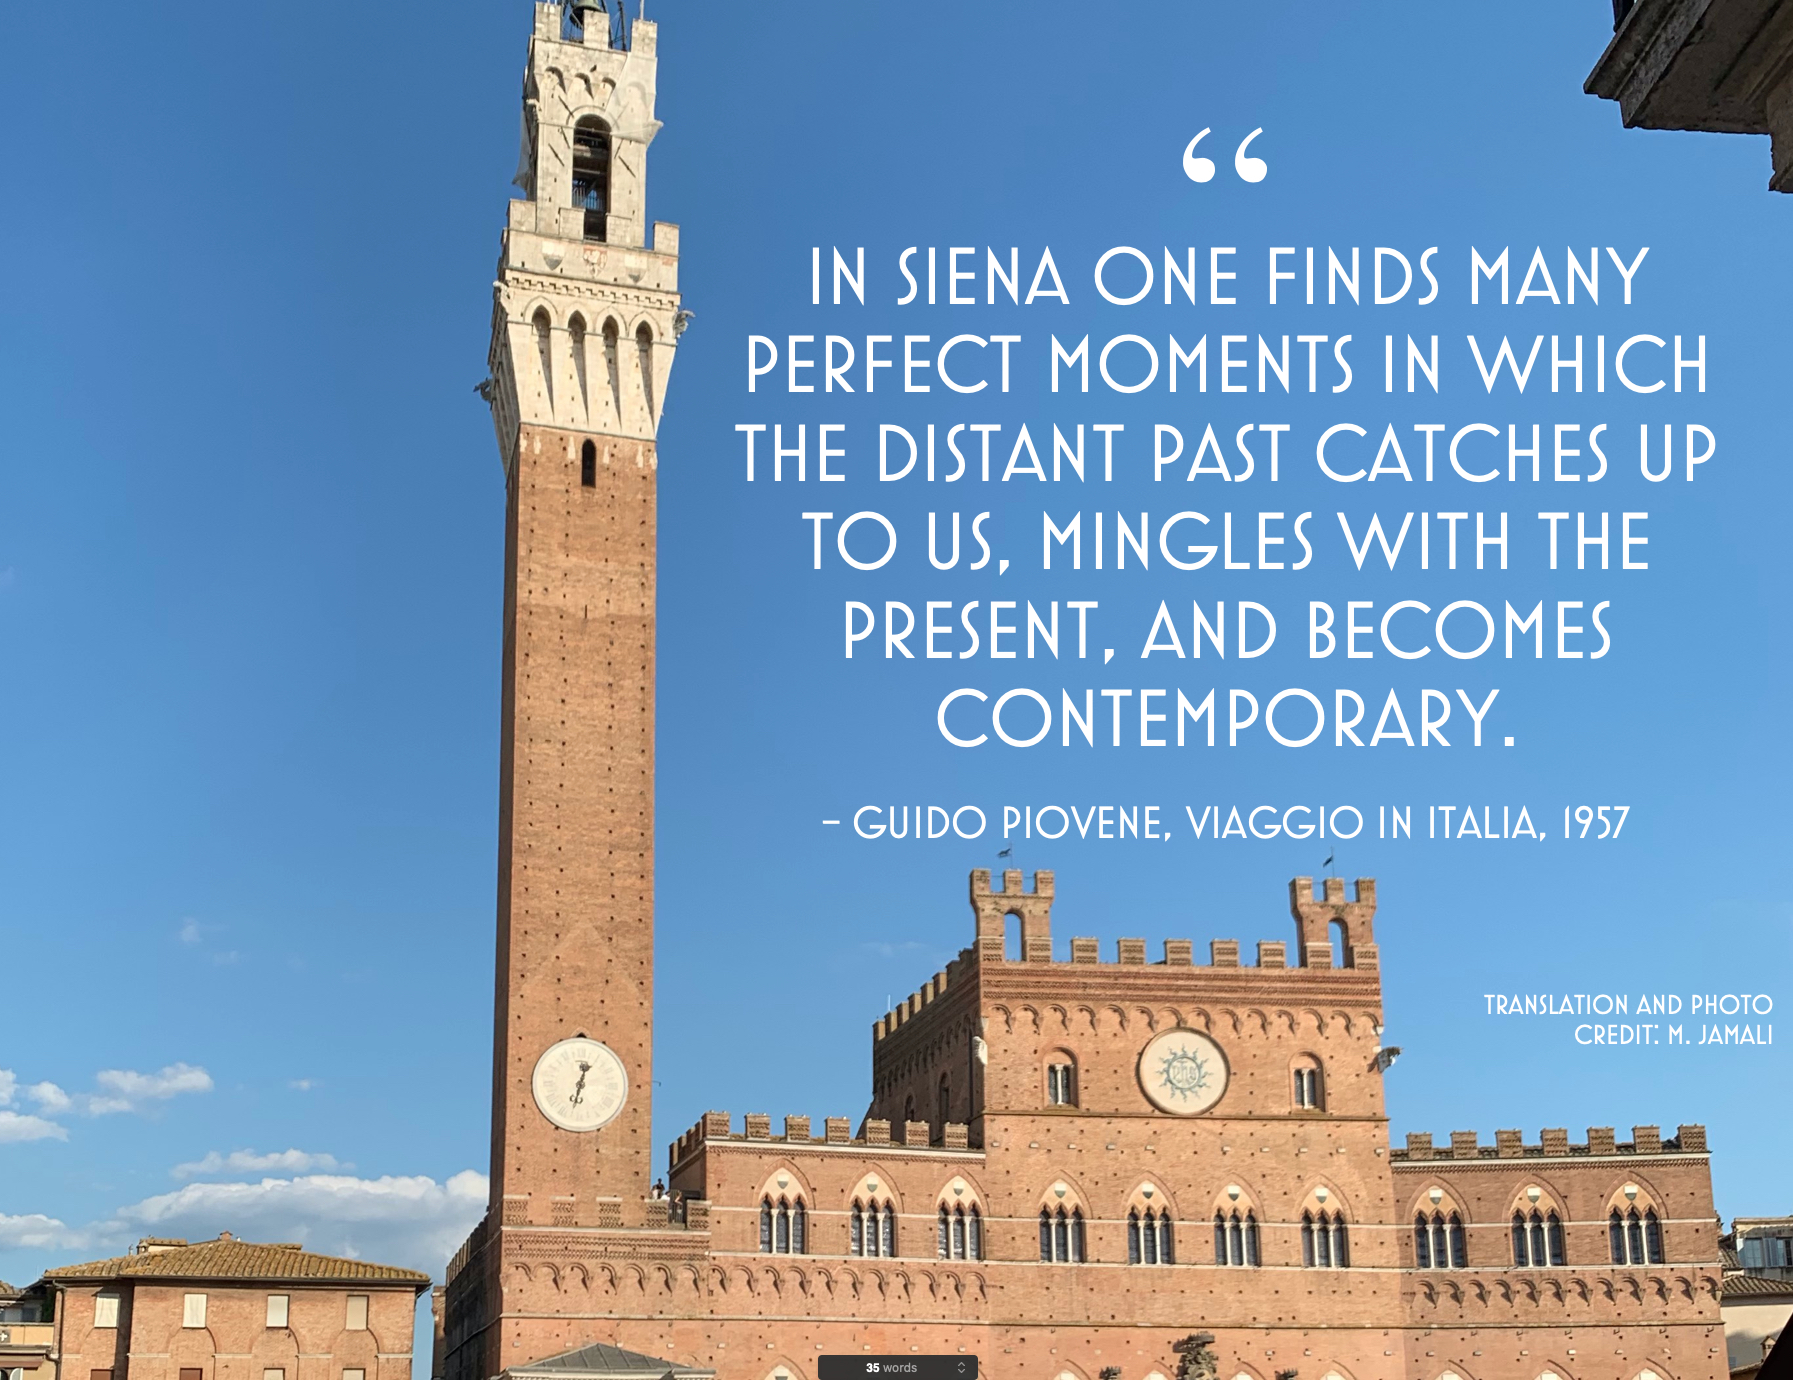 In Siena one finds many perfect moments in which the distant past catches up to us, mingles with the present, and becomes contemporary. Photo credit M Jamali; Design by G. Lisena